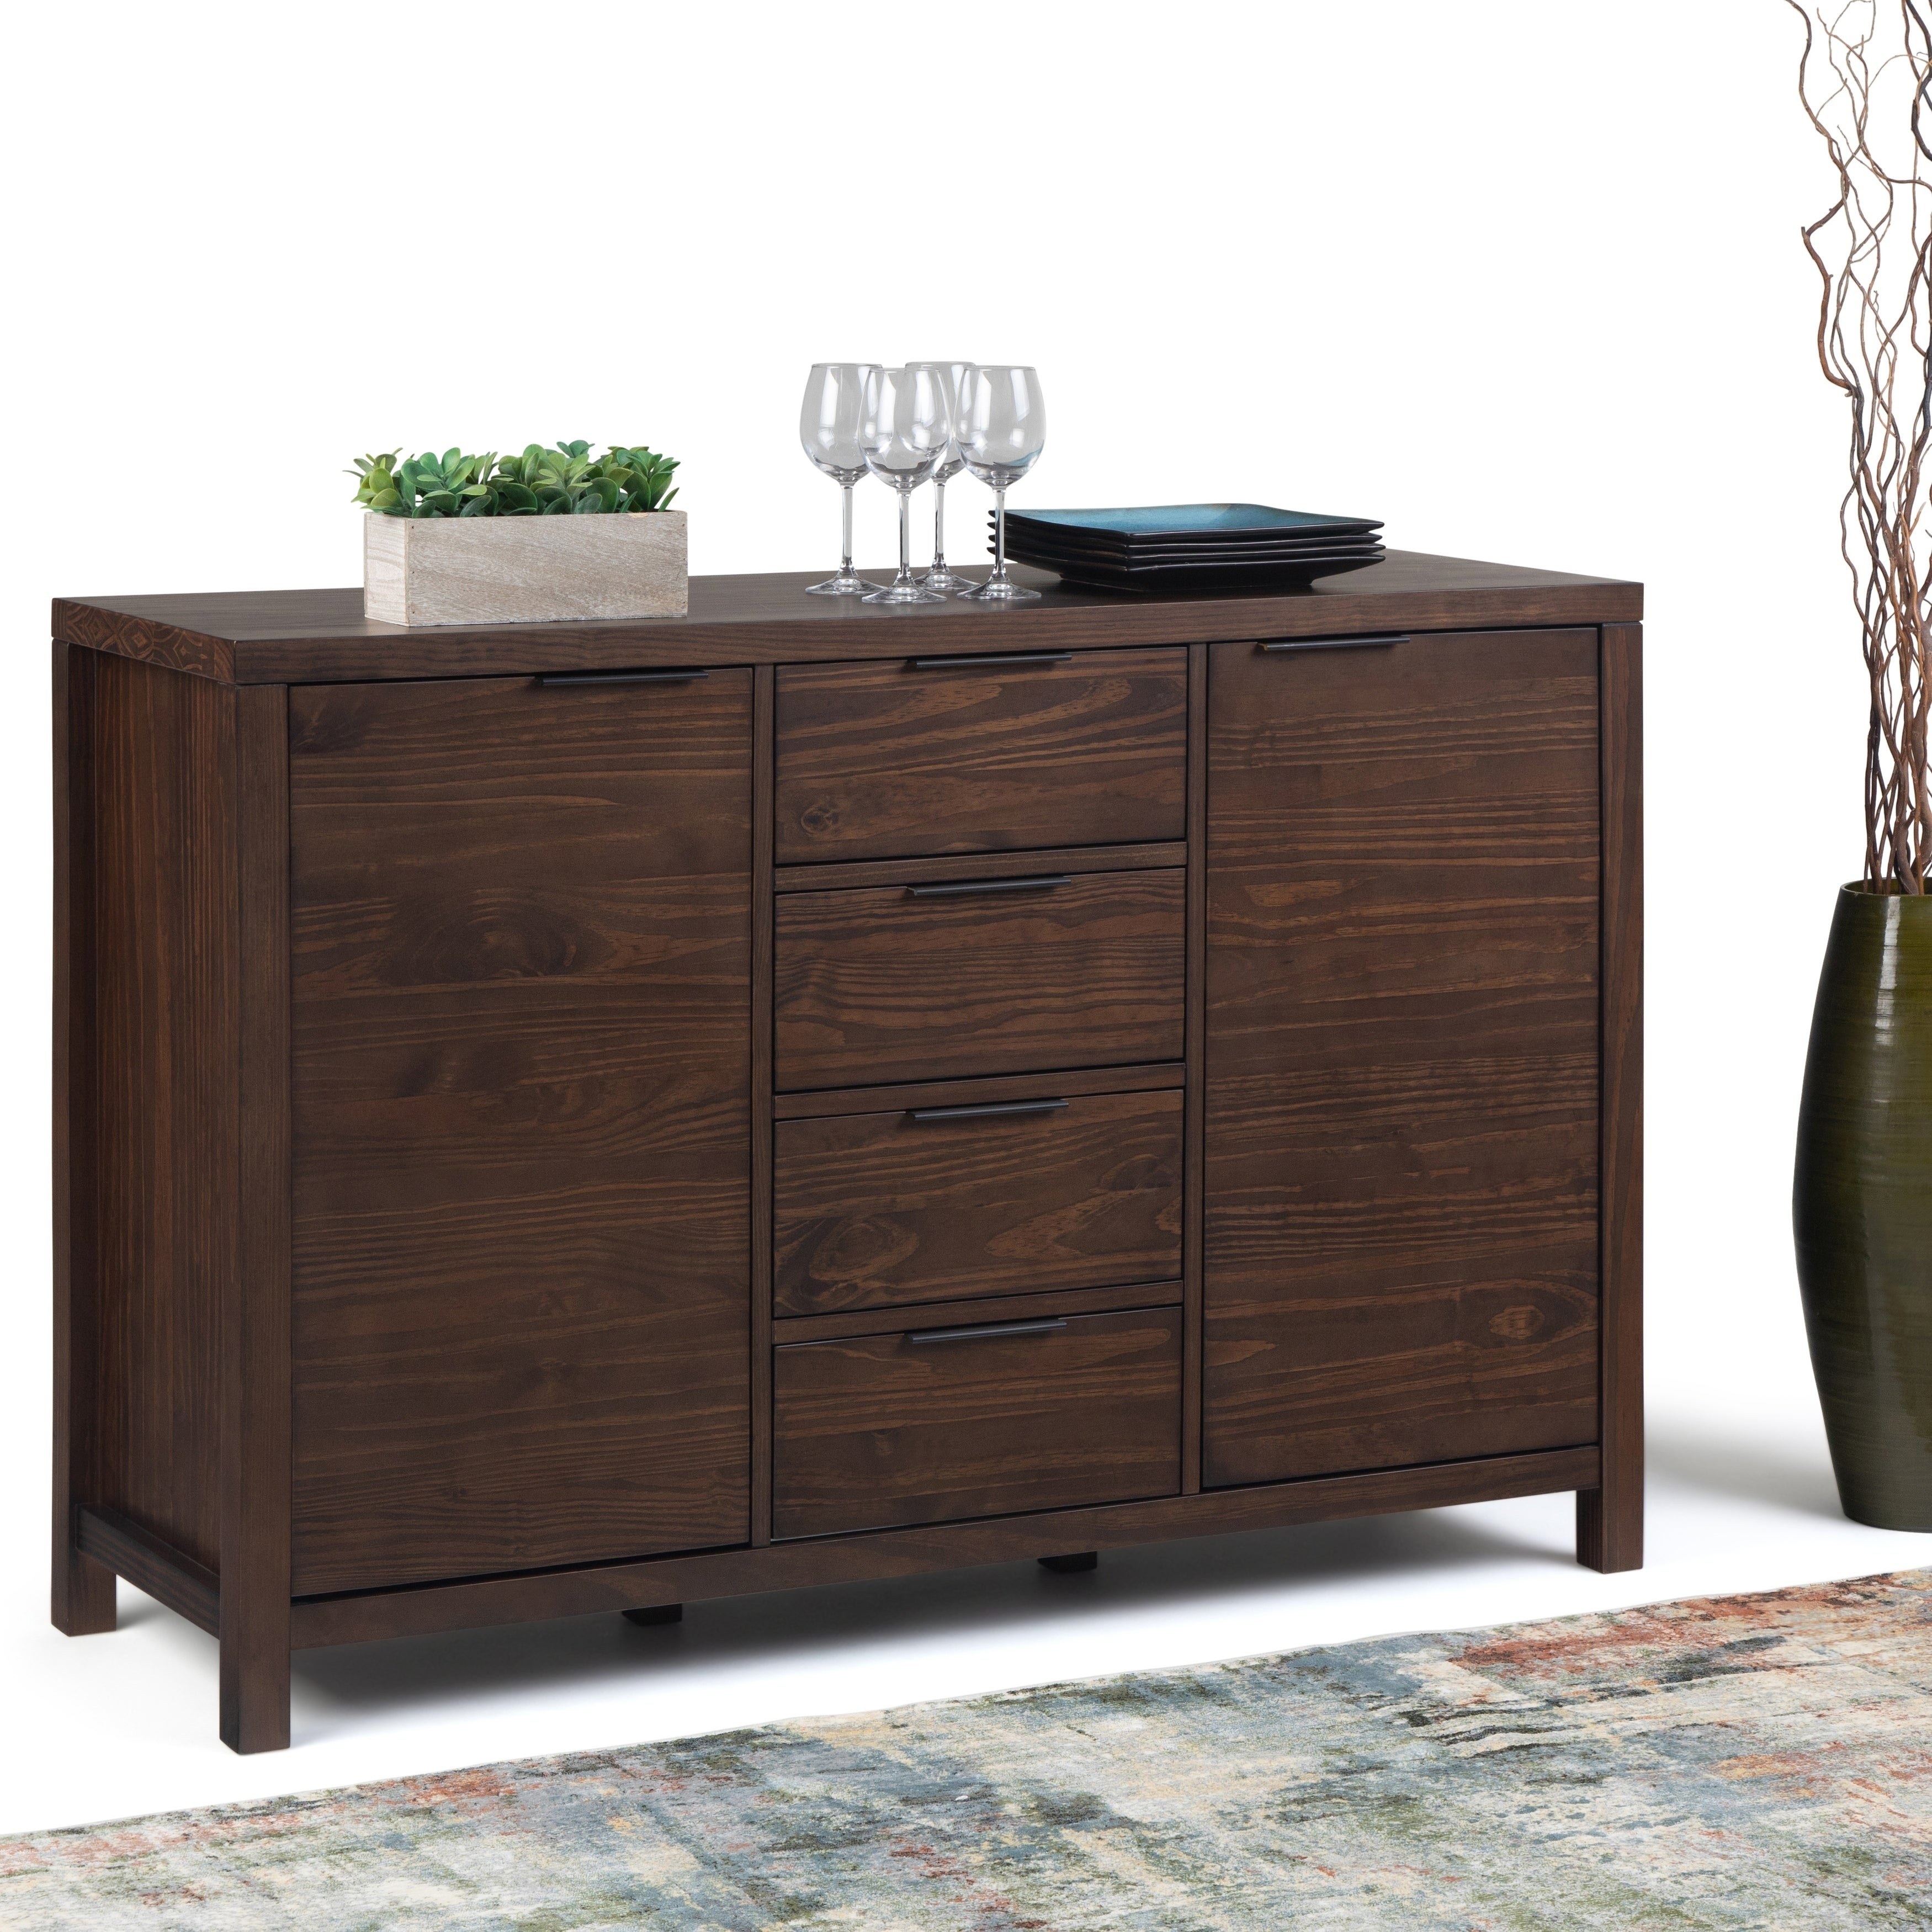 Wyndenhall Fabian Solid Wood 54 Inch Wide Contemporary Modern Sideboard Buffet In Warm Walnut Brown Within Strick & Bolton Dallas Walnut Buffets (View 8 of 30)